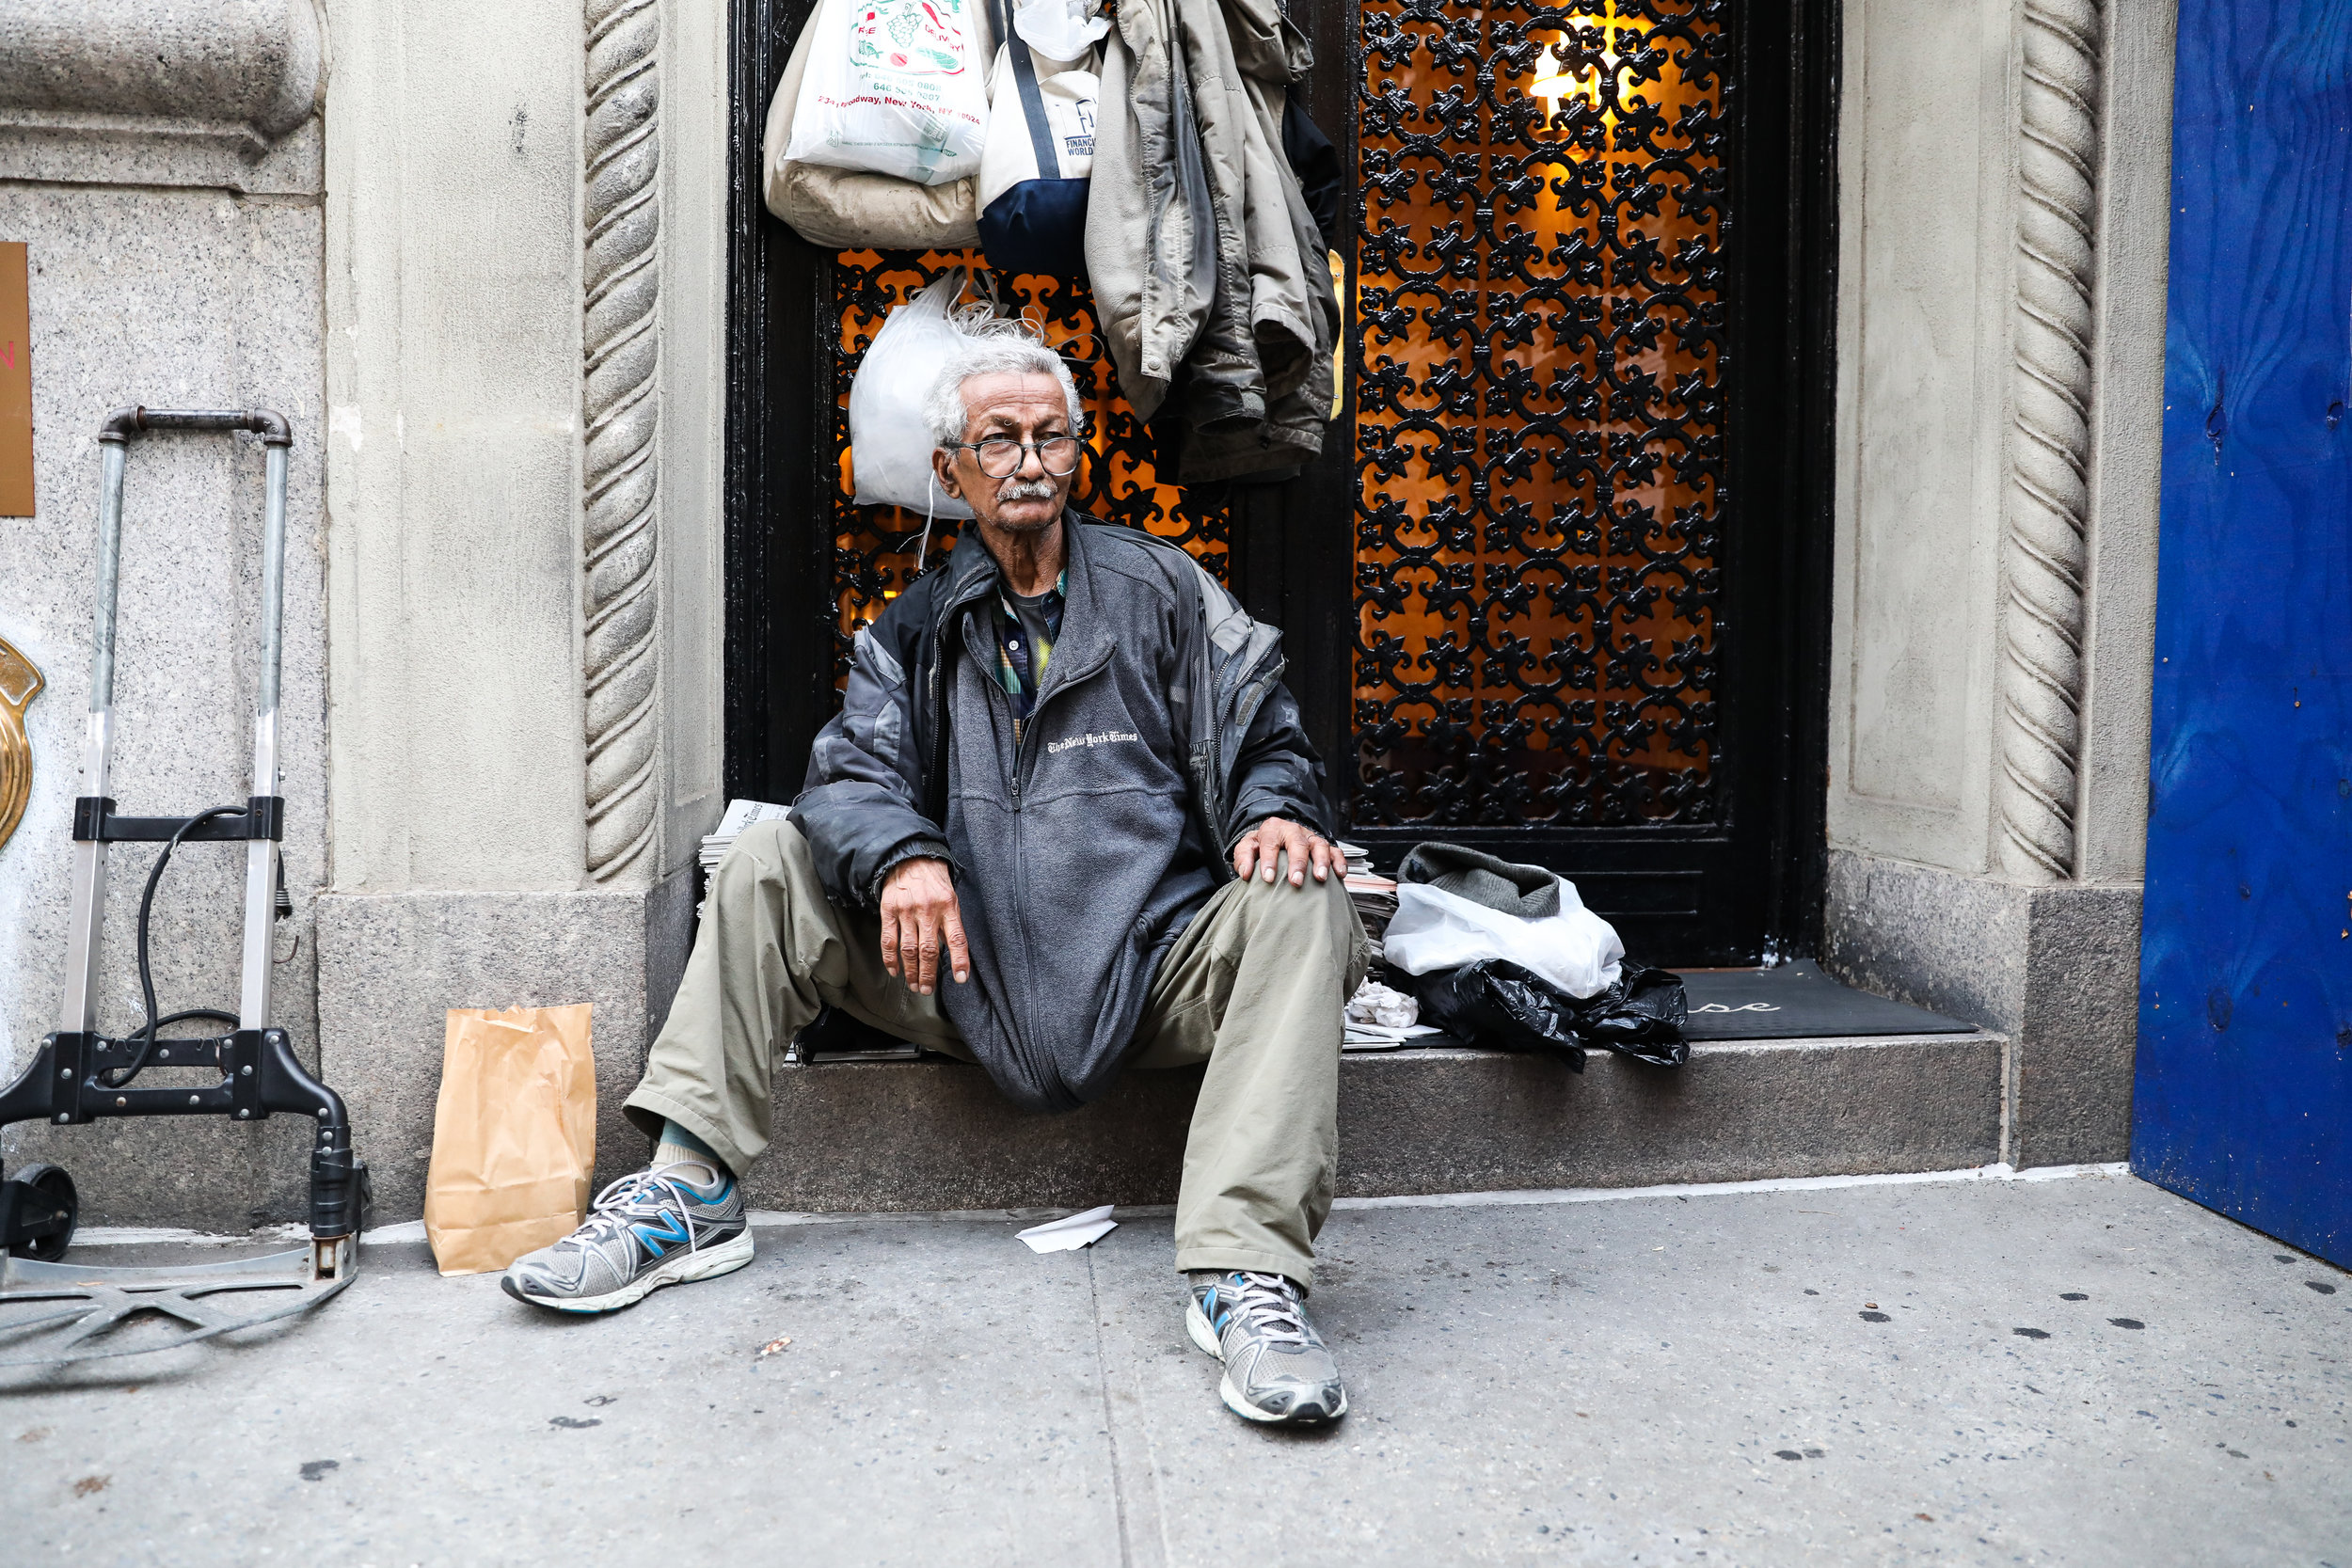 Ram Badan Singh has sold newspapers at Central Park West and 86th Street every day for more than 30 years. A few months of subway construction won't deter him.